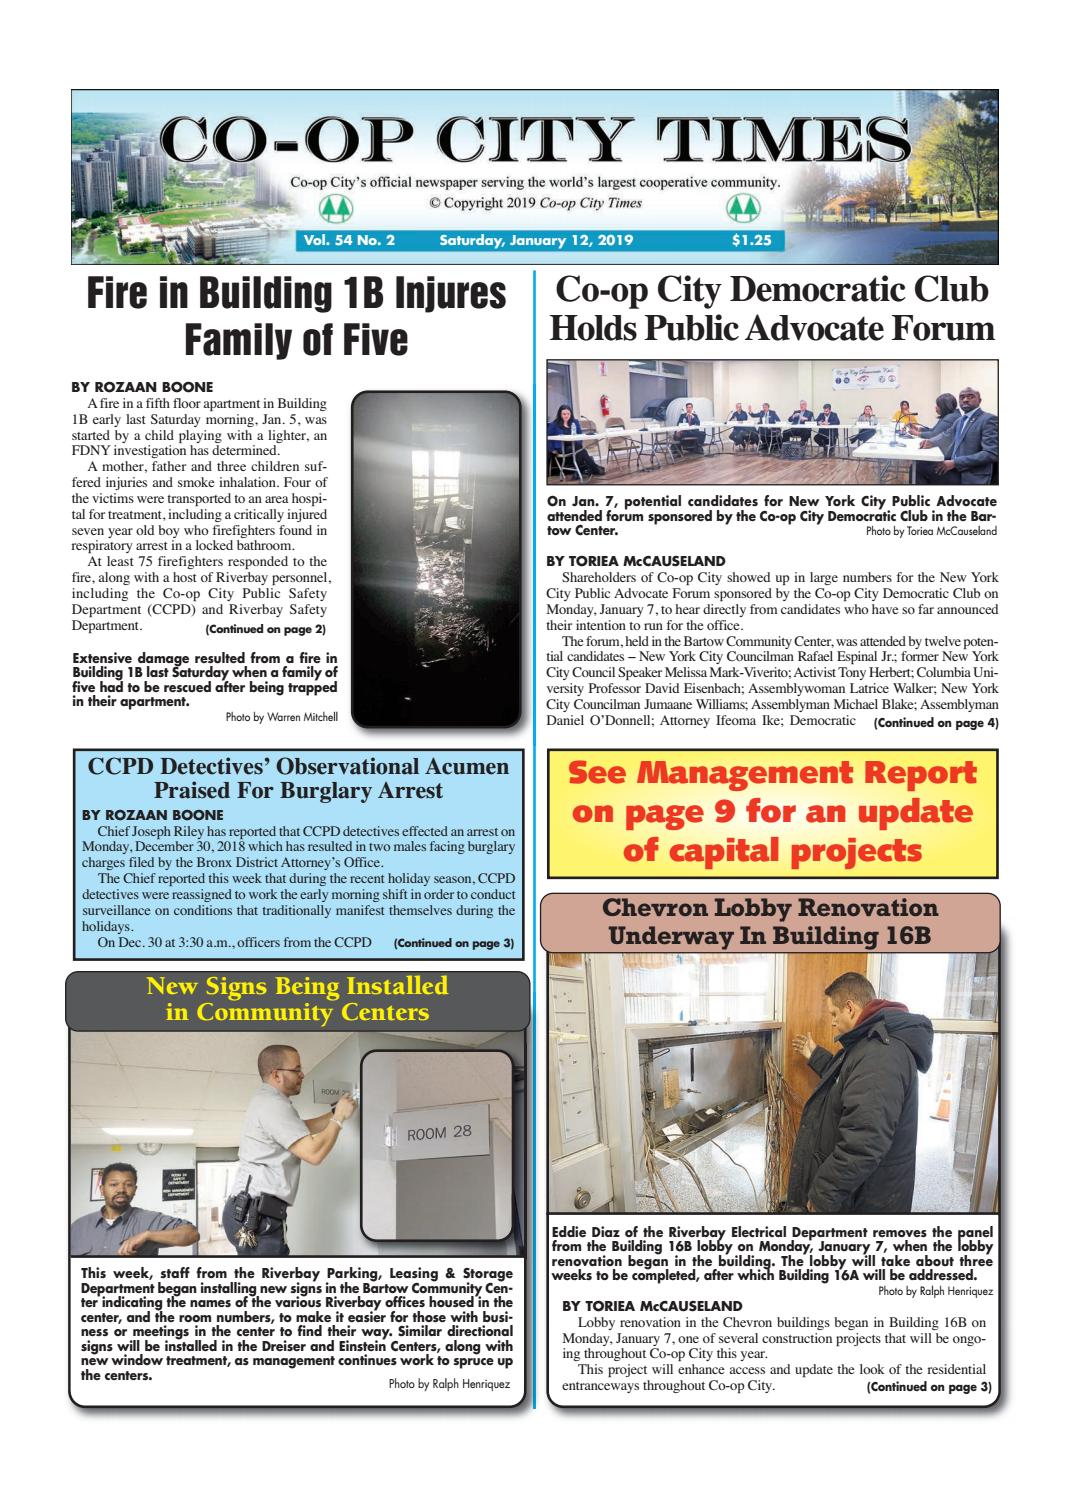 Co-op City Times 1/12/19 by Co-op City Times - issuu